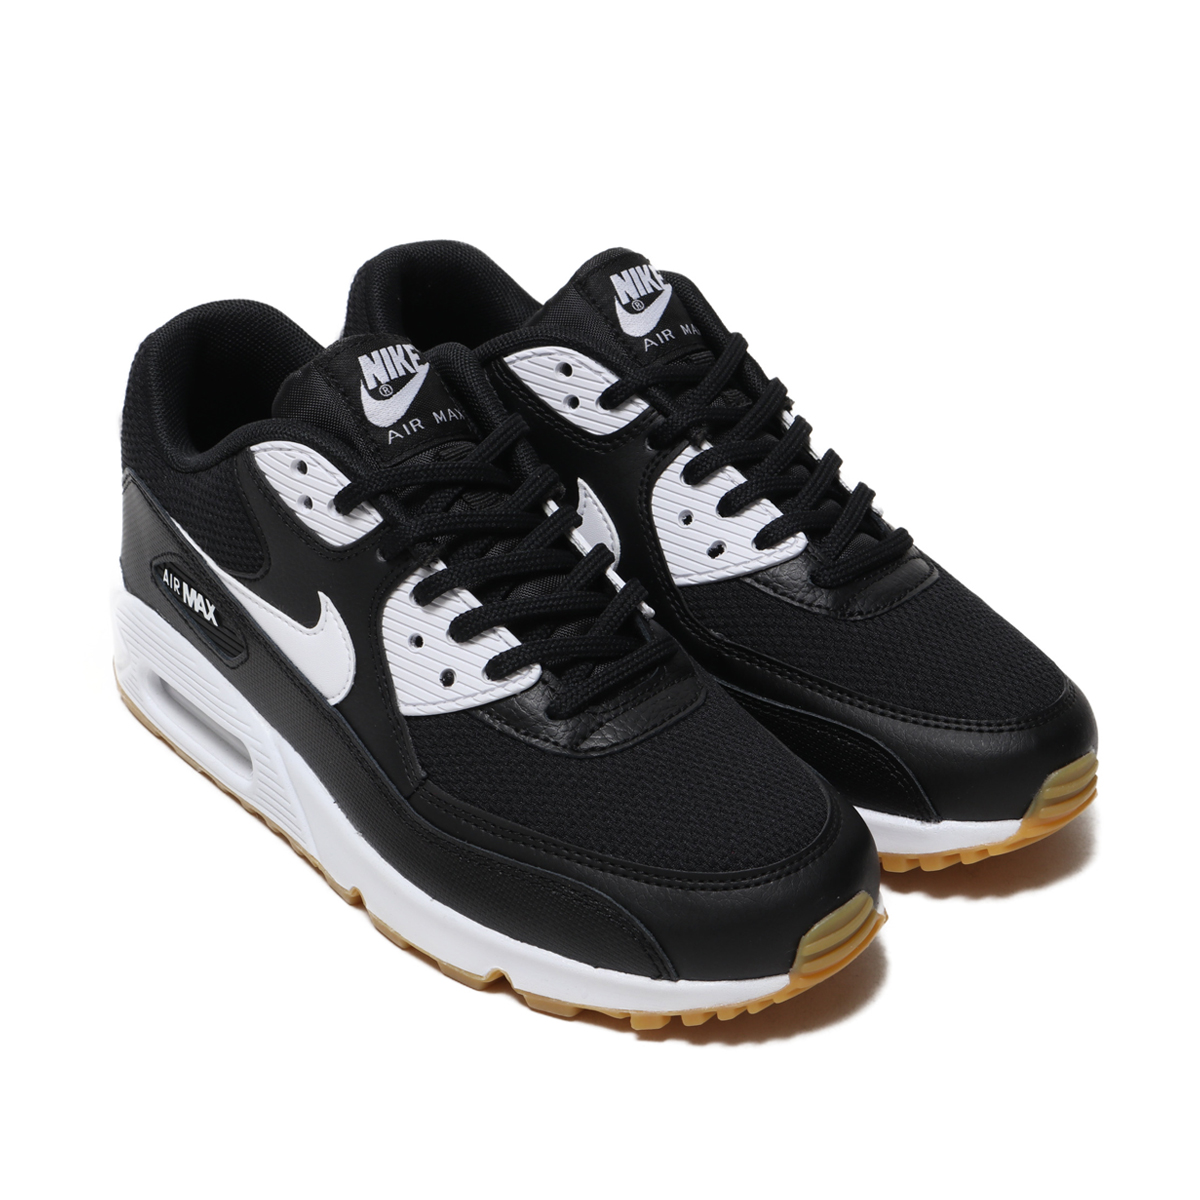 new style a206e f977e ... germany nike wmns air max 90 nike women air max 90 black white gum  light brown